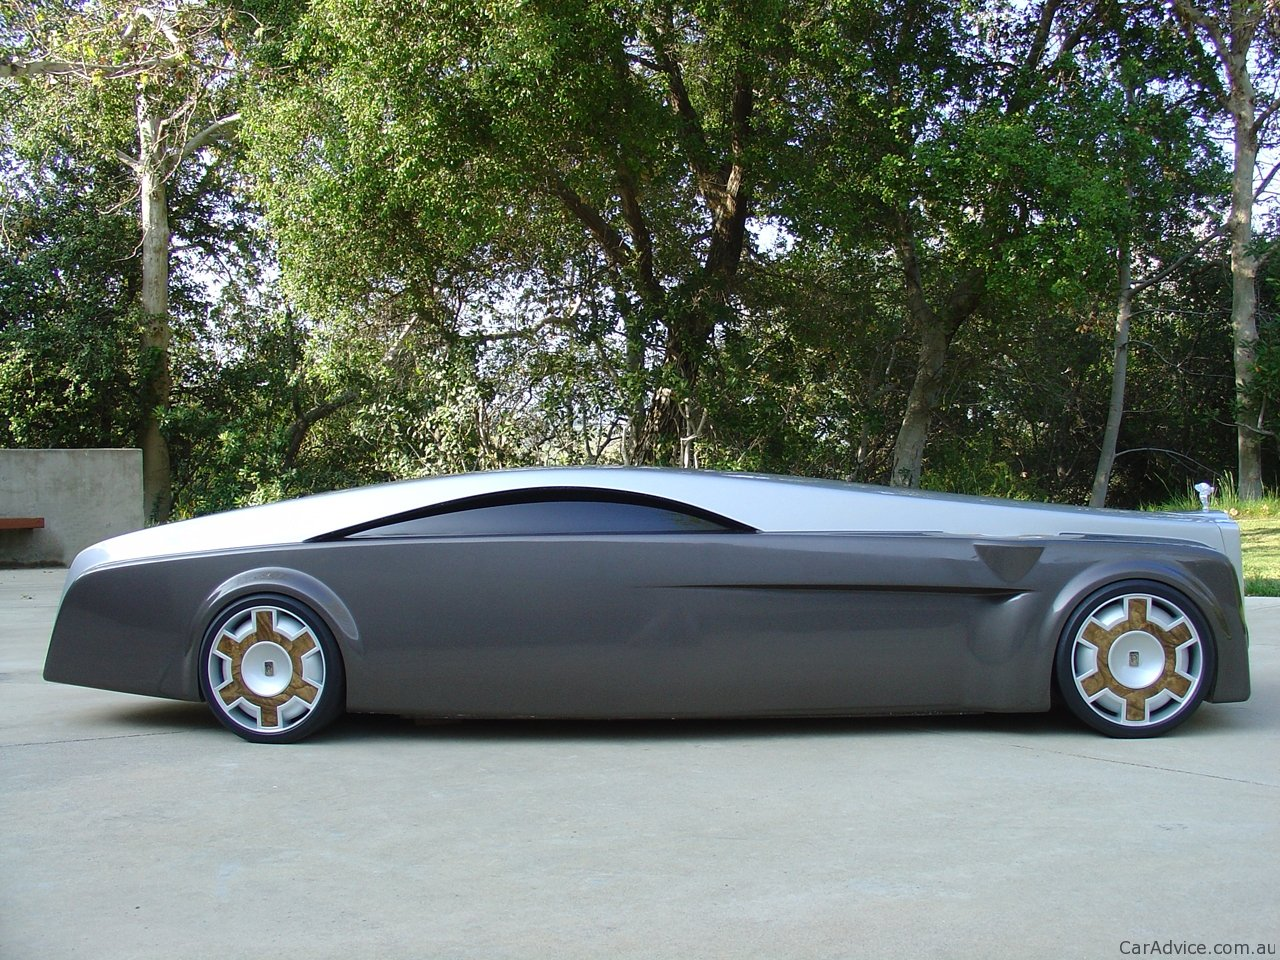 Gucci Benz >> Rolls-Royce Apparition Concept - photos | CarAdvice